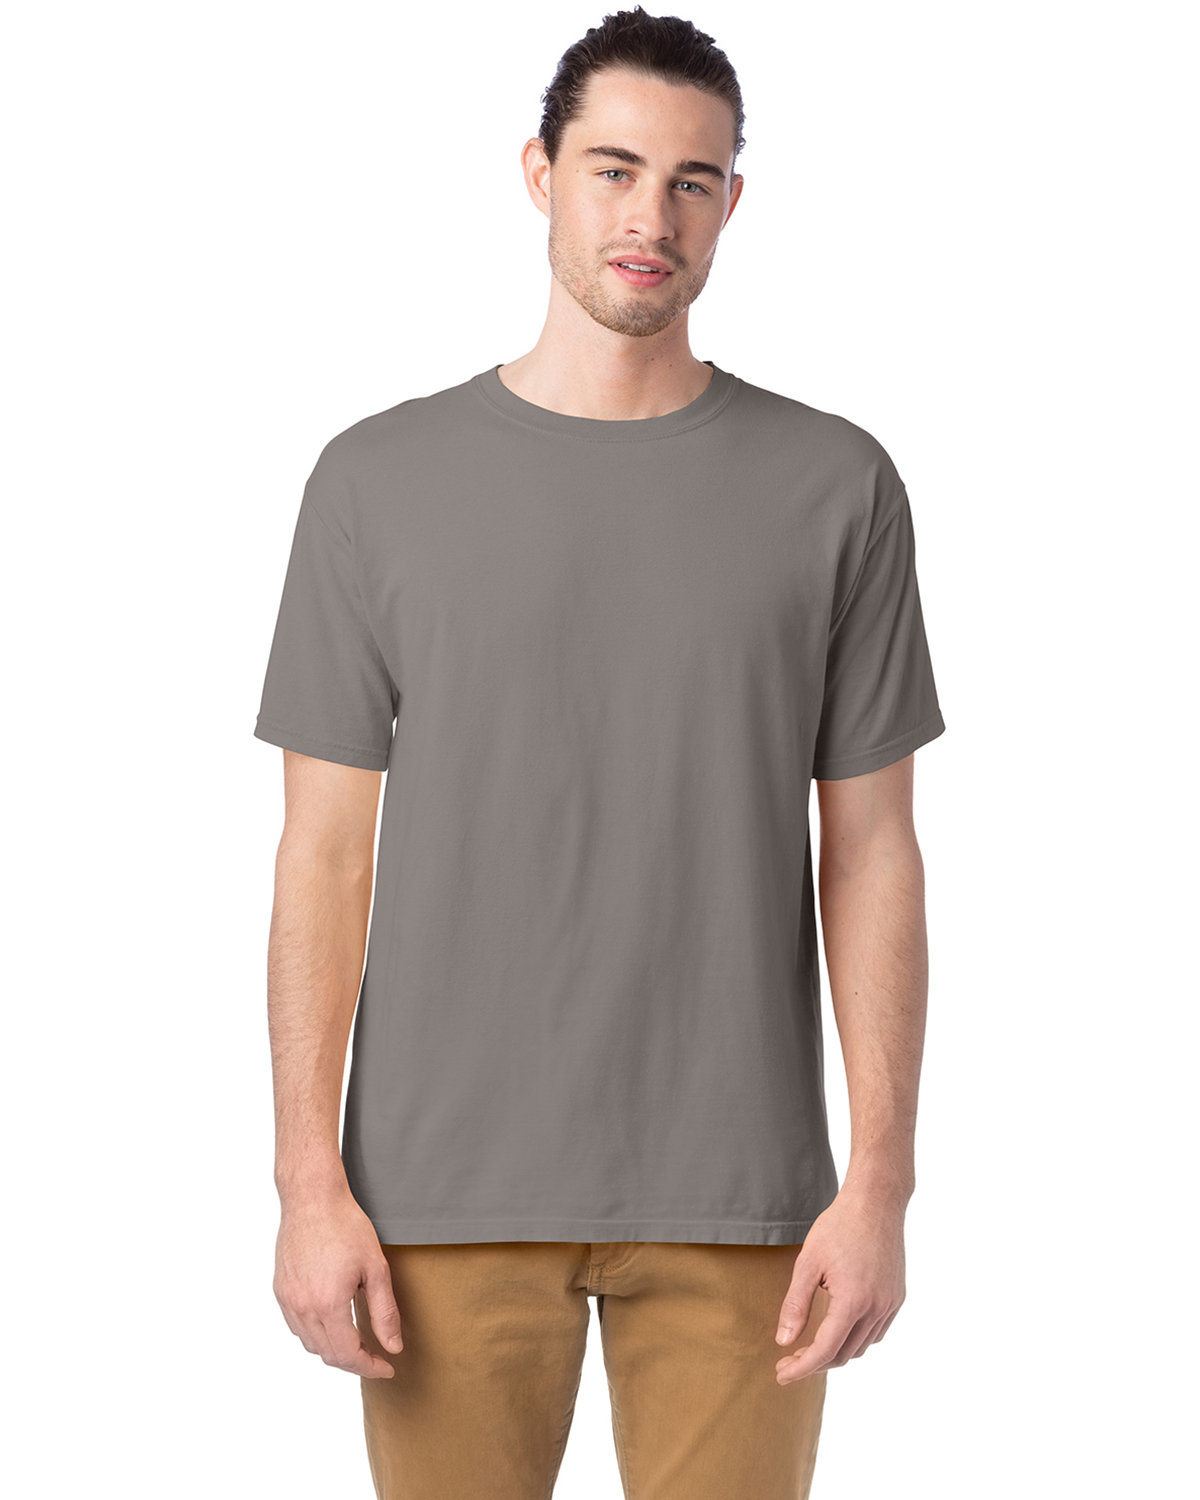 ComfortWash by Hanes Men's 5.5 oz., 100% Ringspun Cotton Garment-Dyed T-Shirt CONCRETE